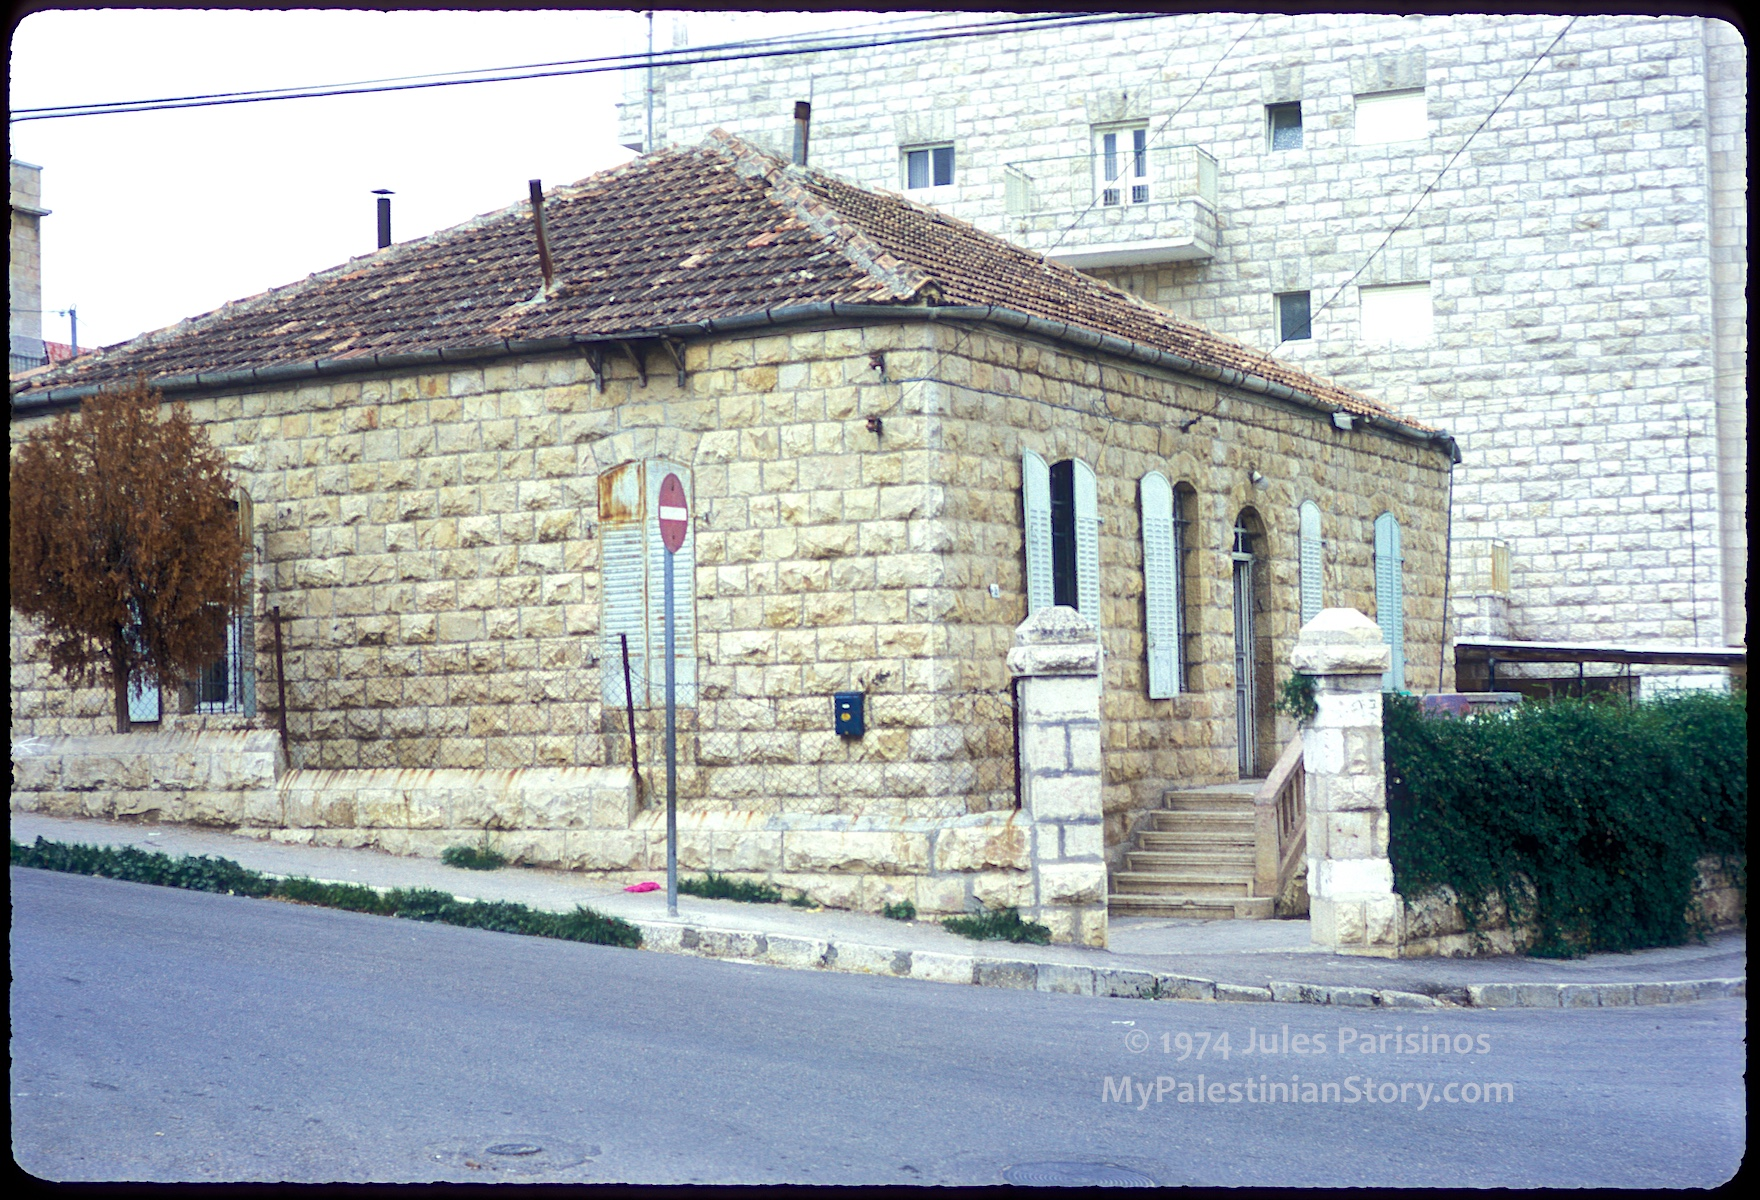 Kassotis house in Katamon. Photographed by Jules Parisinos, April 1974